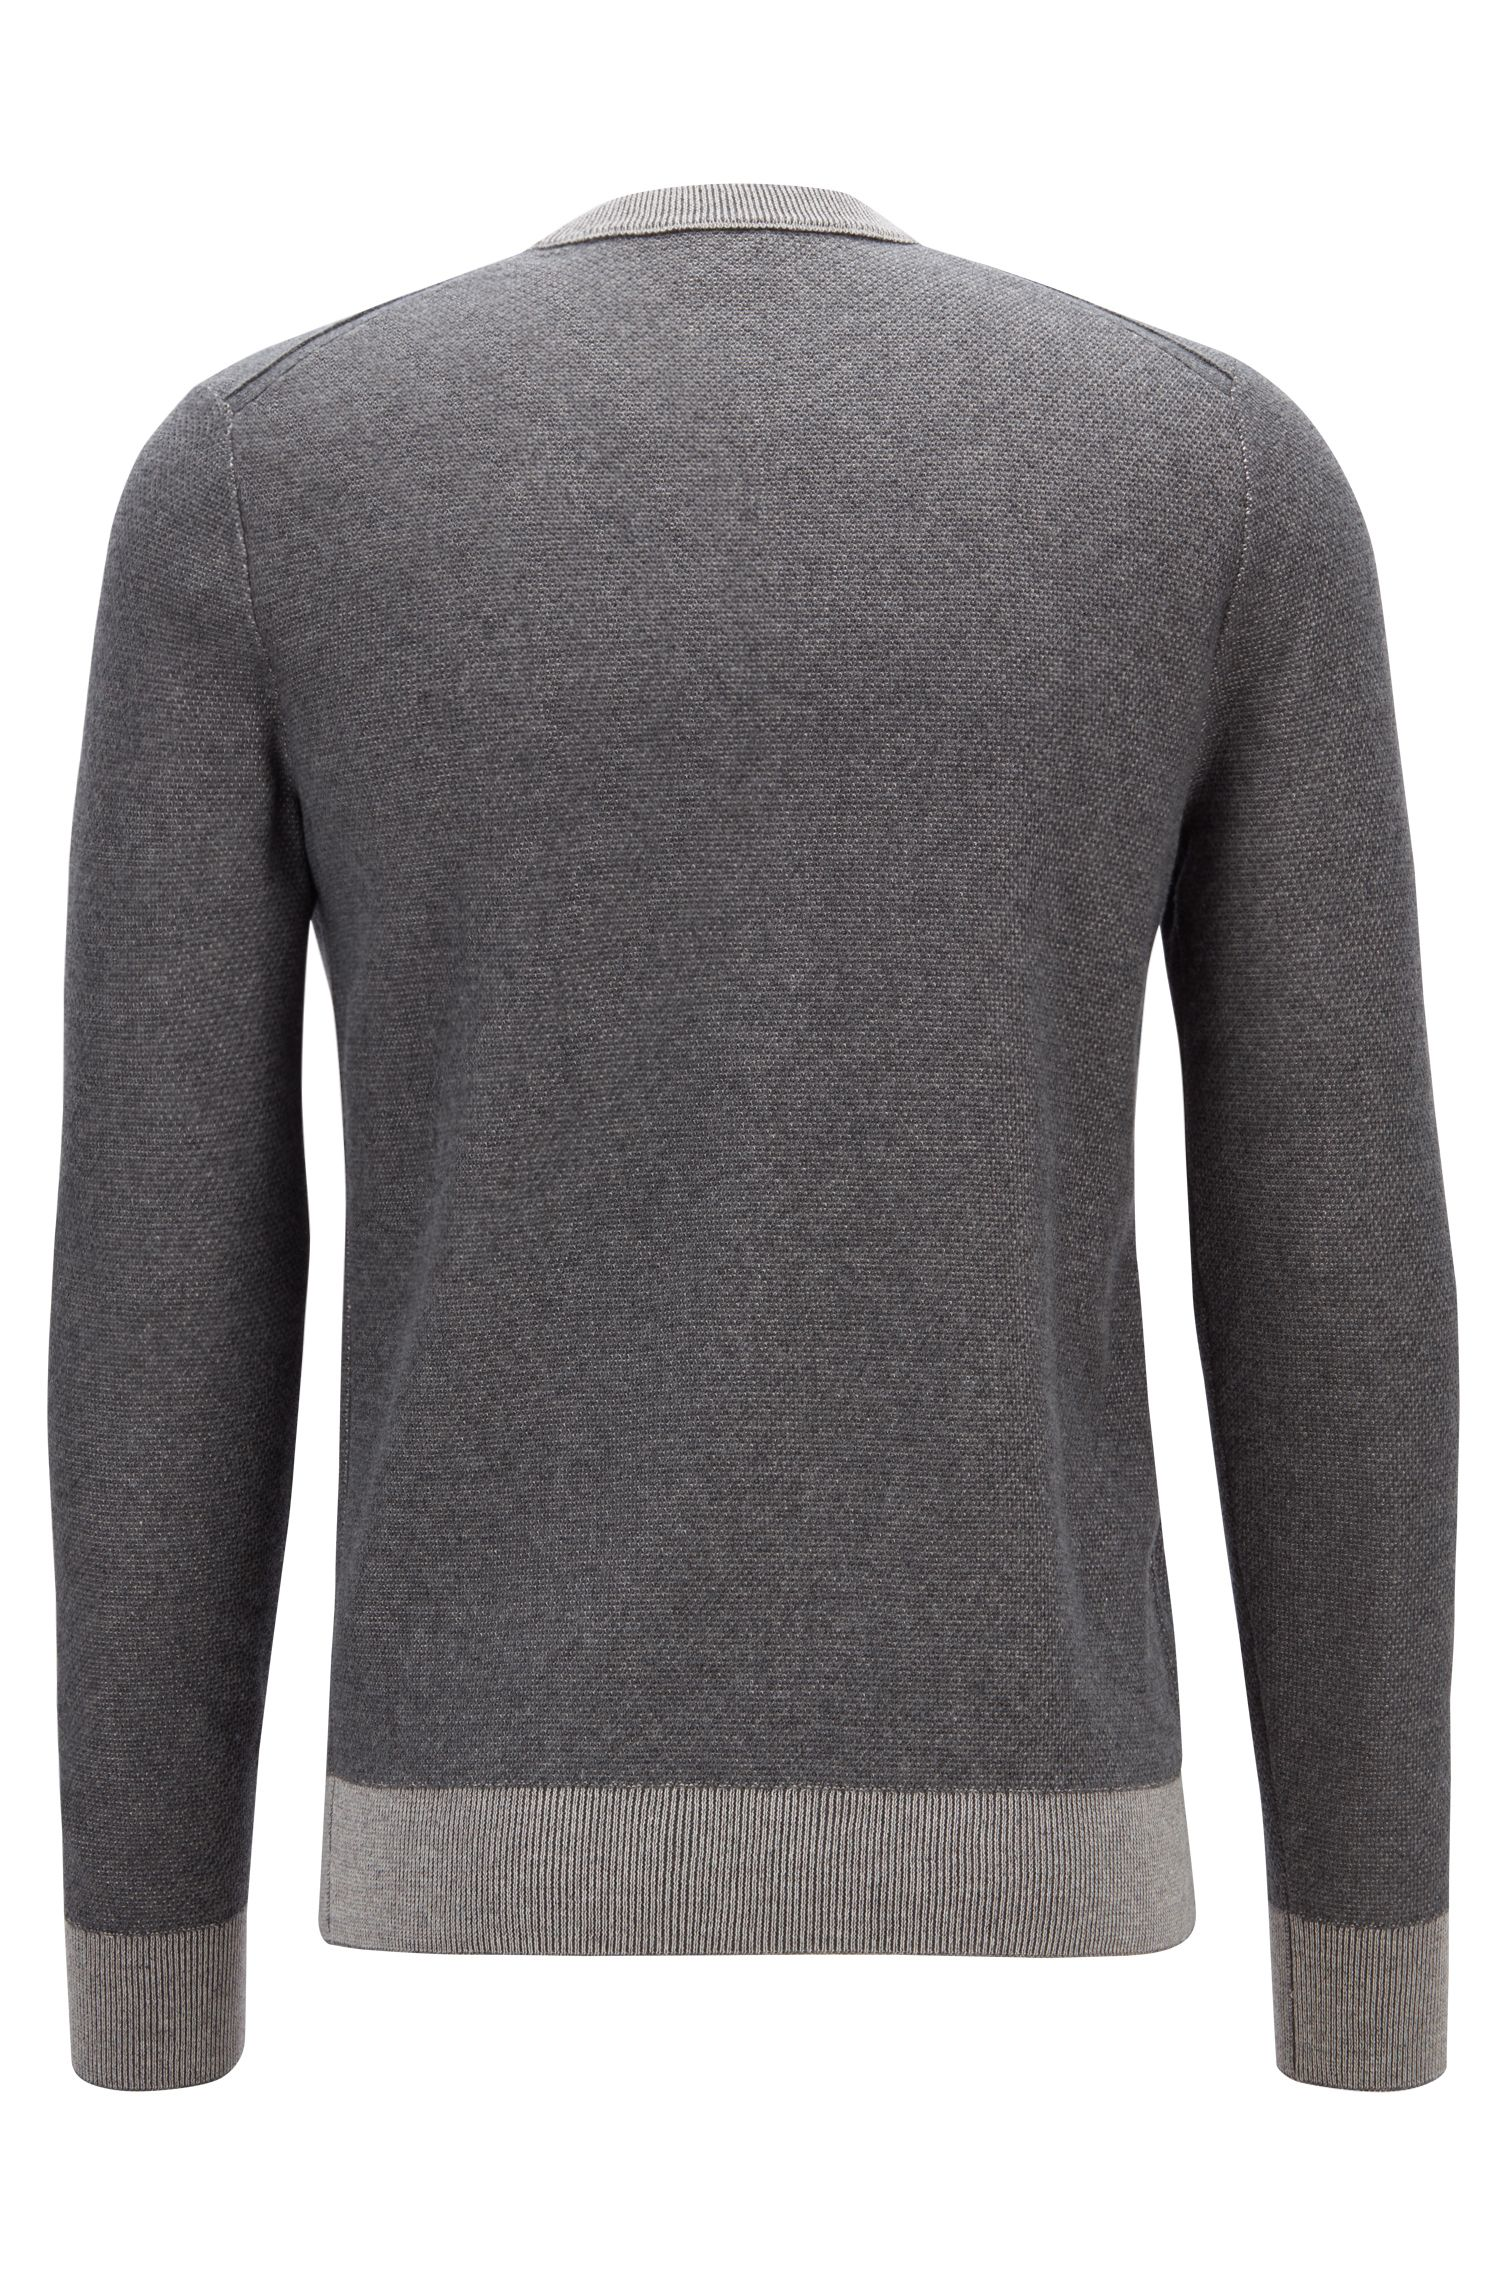 Lightweight cotton-blend sweater in two-tone micro structure, Grey